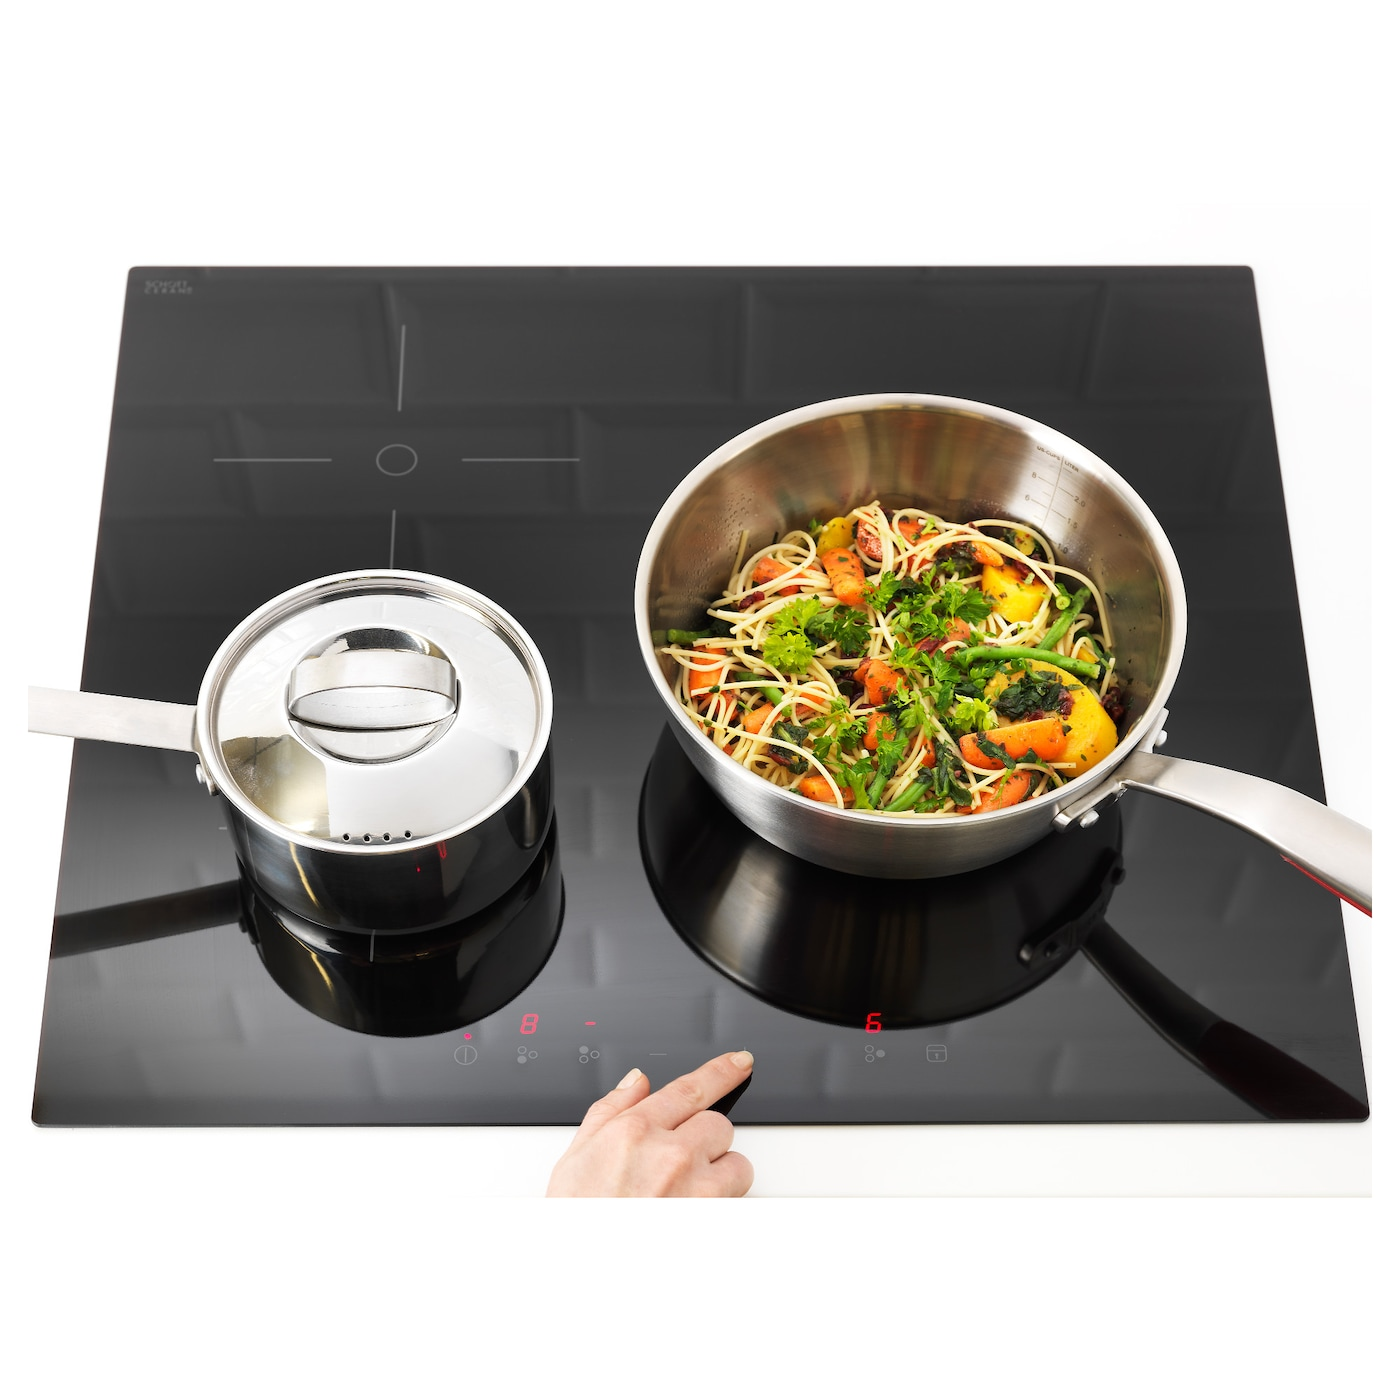 IKEA TREVLIG induction hob 5 year guarantee. Read about the terms in the guarantee brochure.